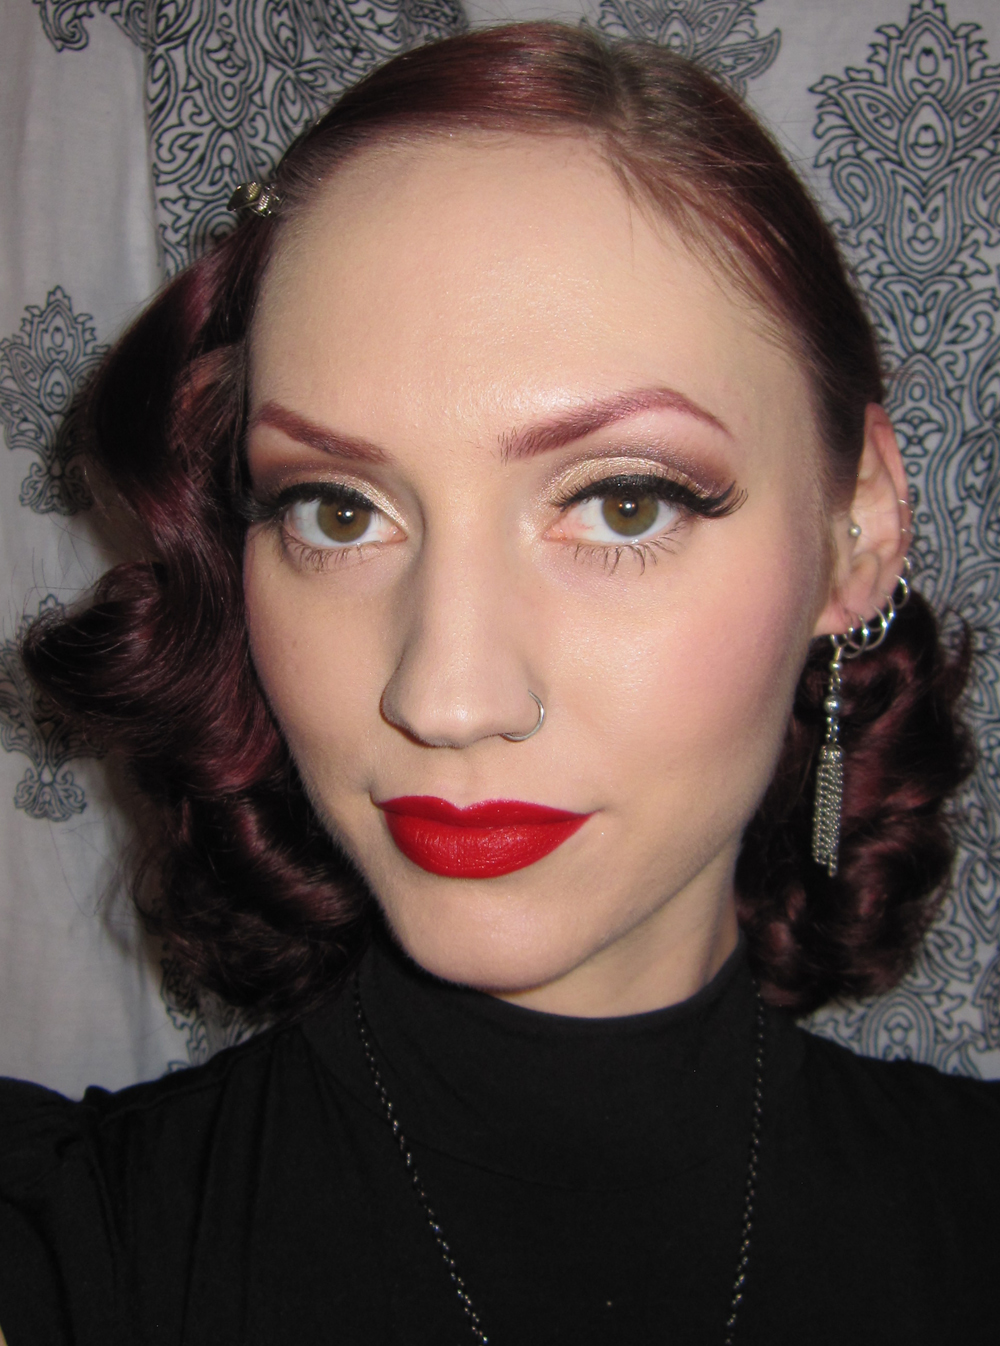 I My Jumbo Hair Curlers Rolling Them Under To Get The Look Http Www Jumbocurlers Com Html